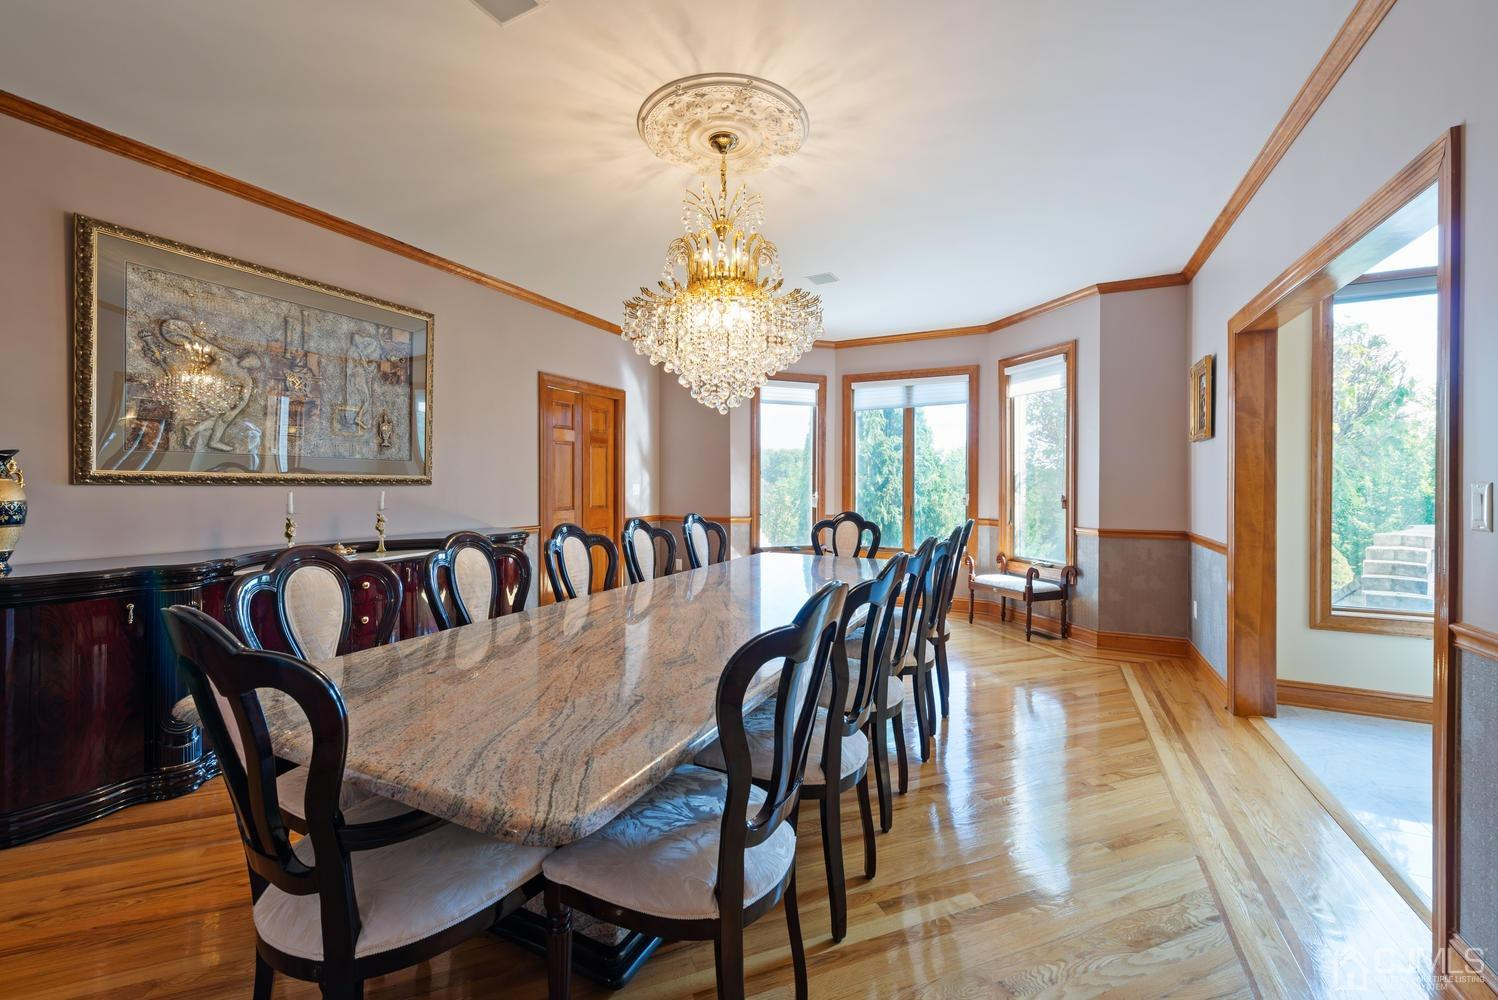 The Formal Dining Room is ready to entertain. This custom made Dining Set is included in the sale!